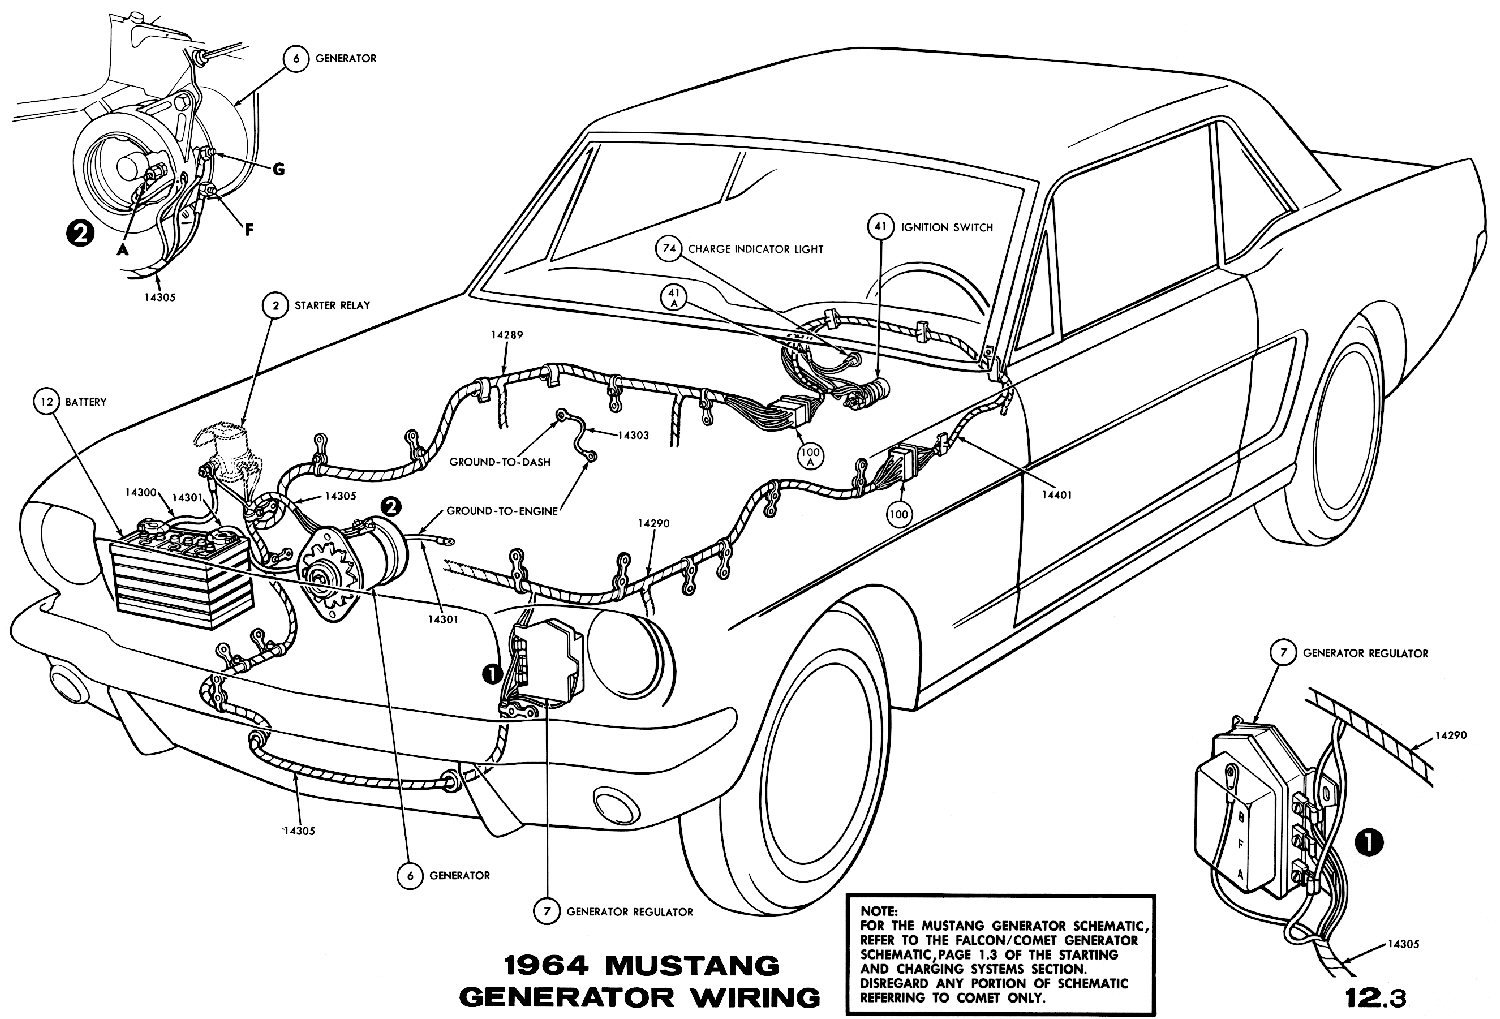 1964f 1964 mustang wiring diagrams average joe restoration 1966 mustang wiring diagrams at creativeand.co